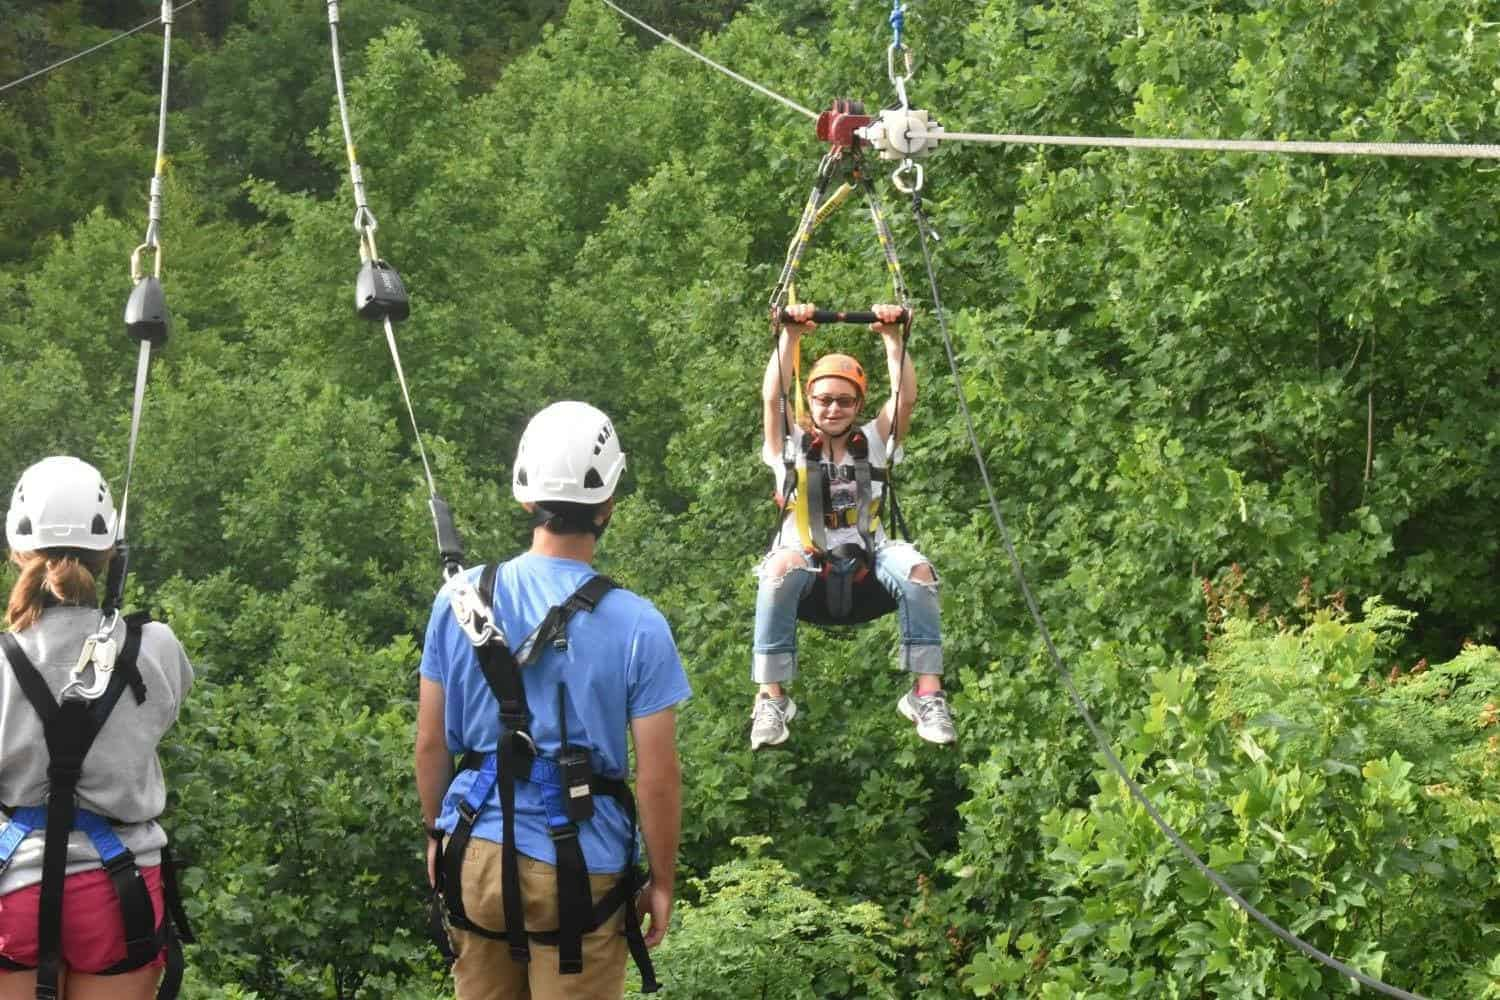 Gabi on Zipline